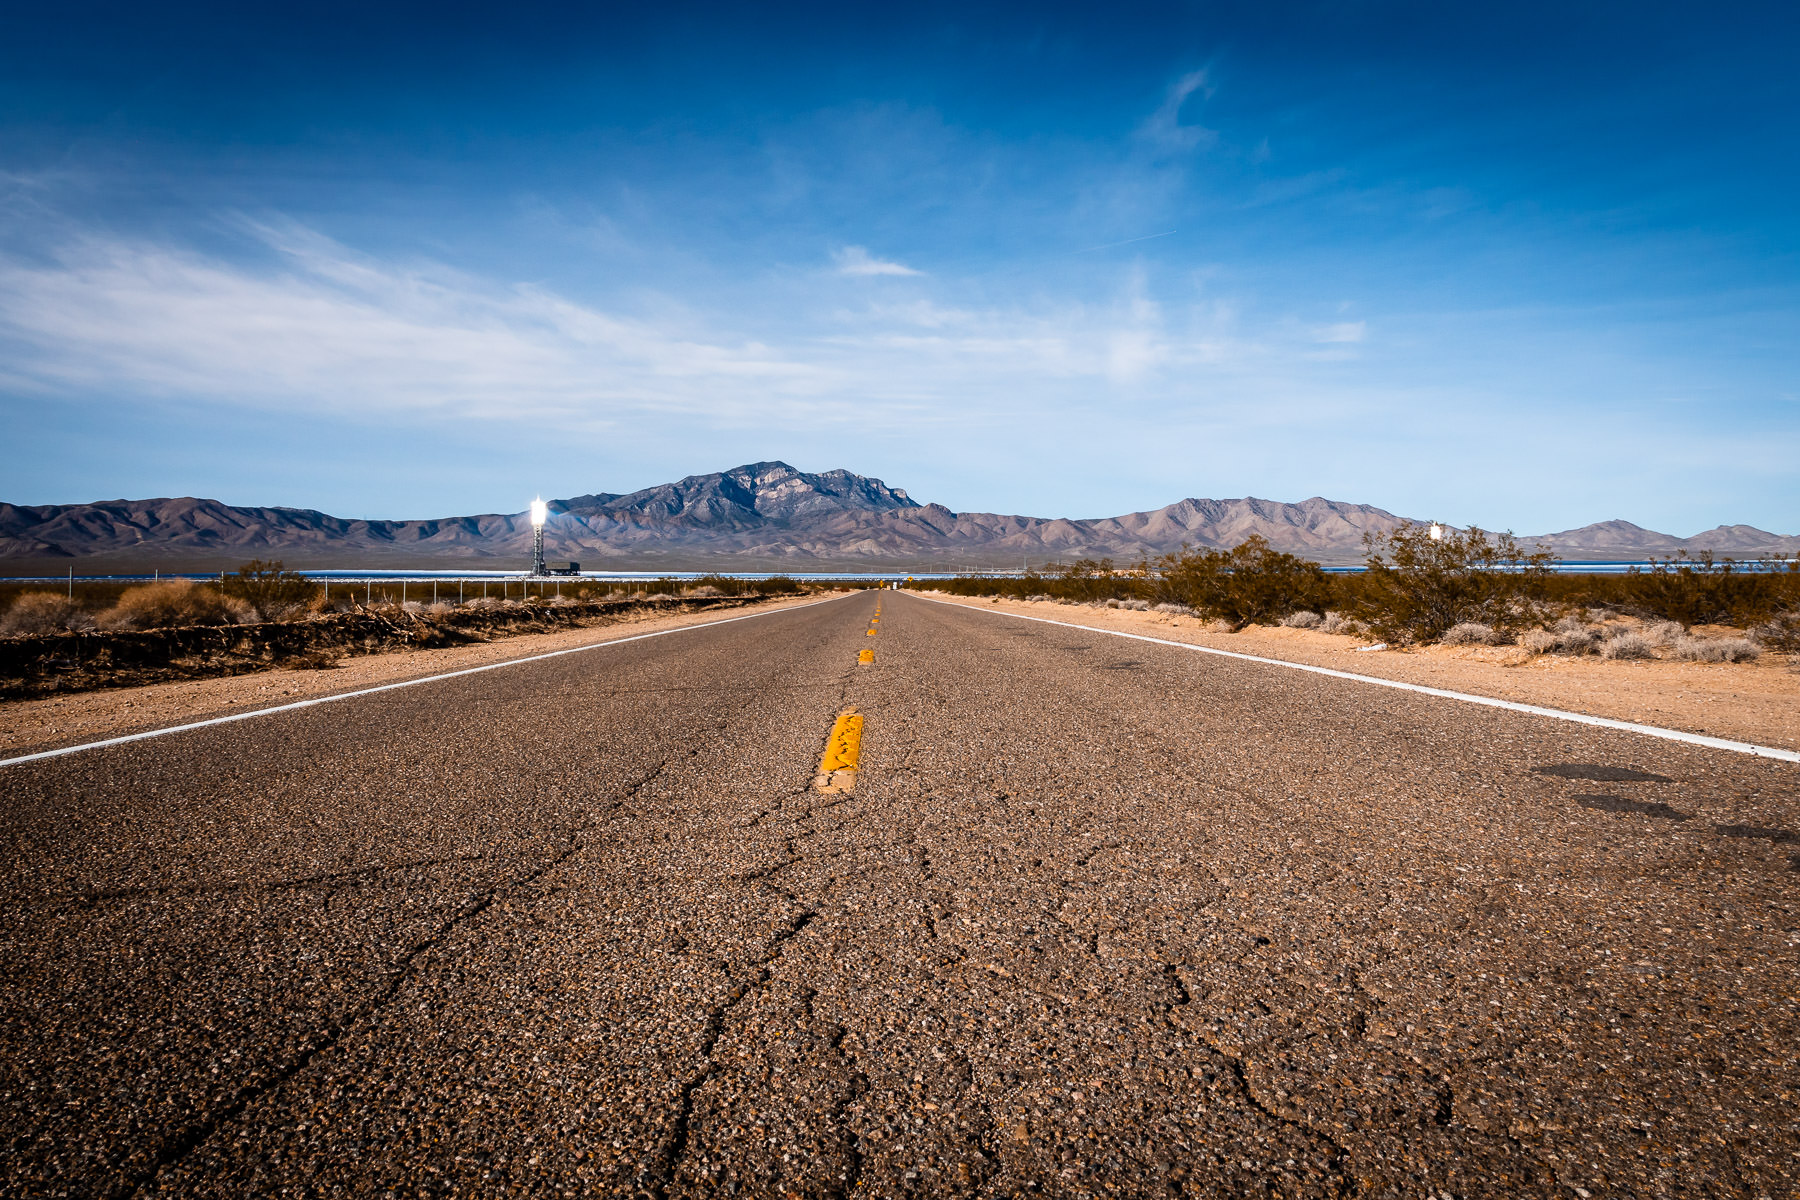 A lonely road leads to the Ivanpah Solar Power Facility in the California desert near the Nevada border.